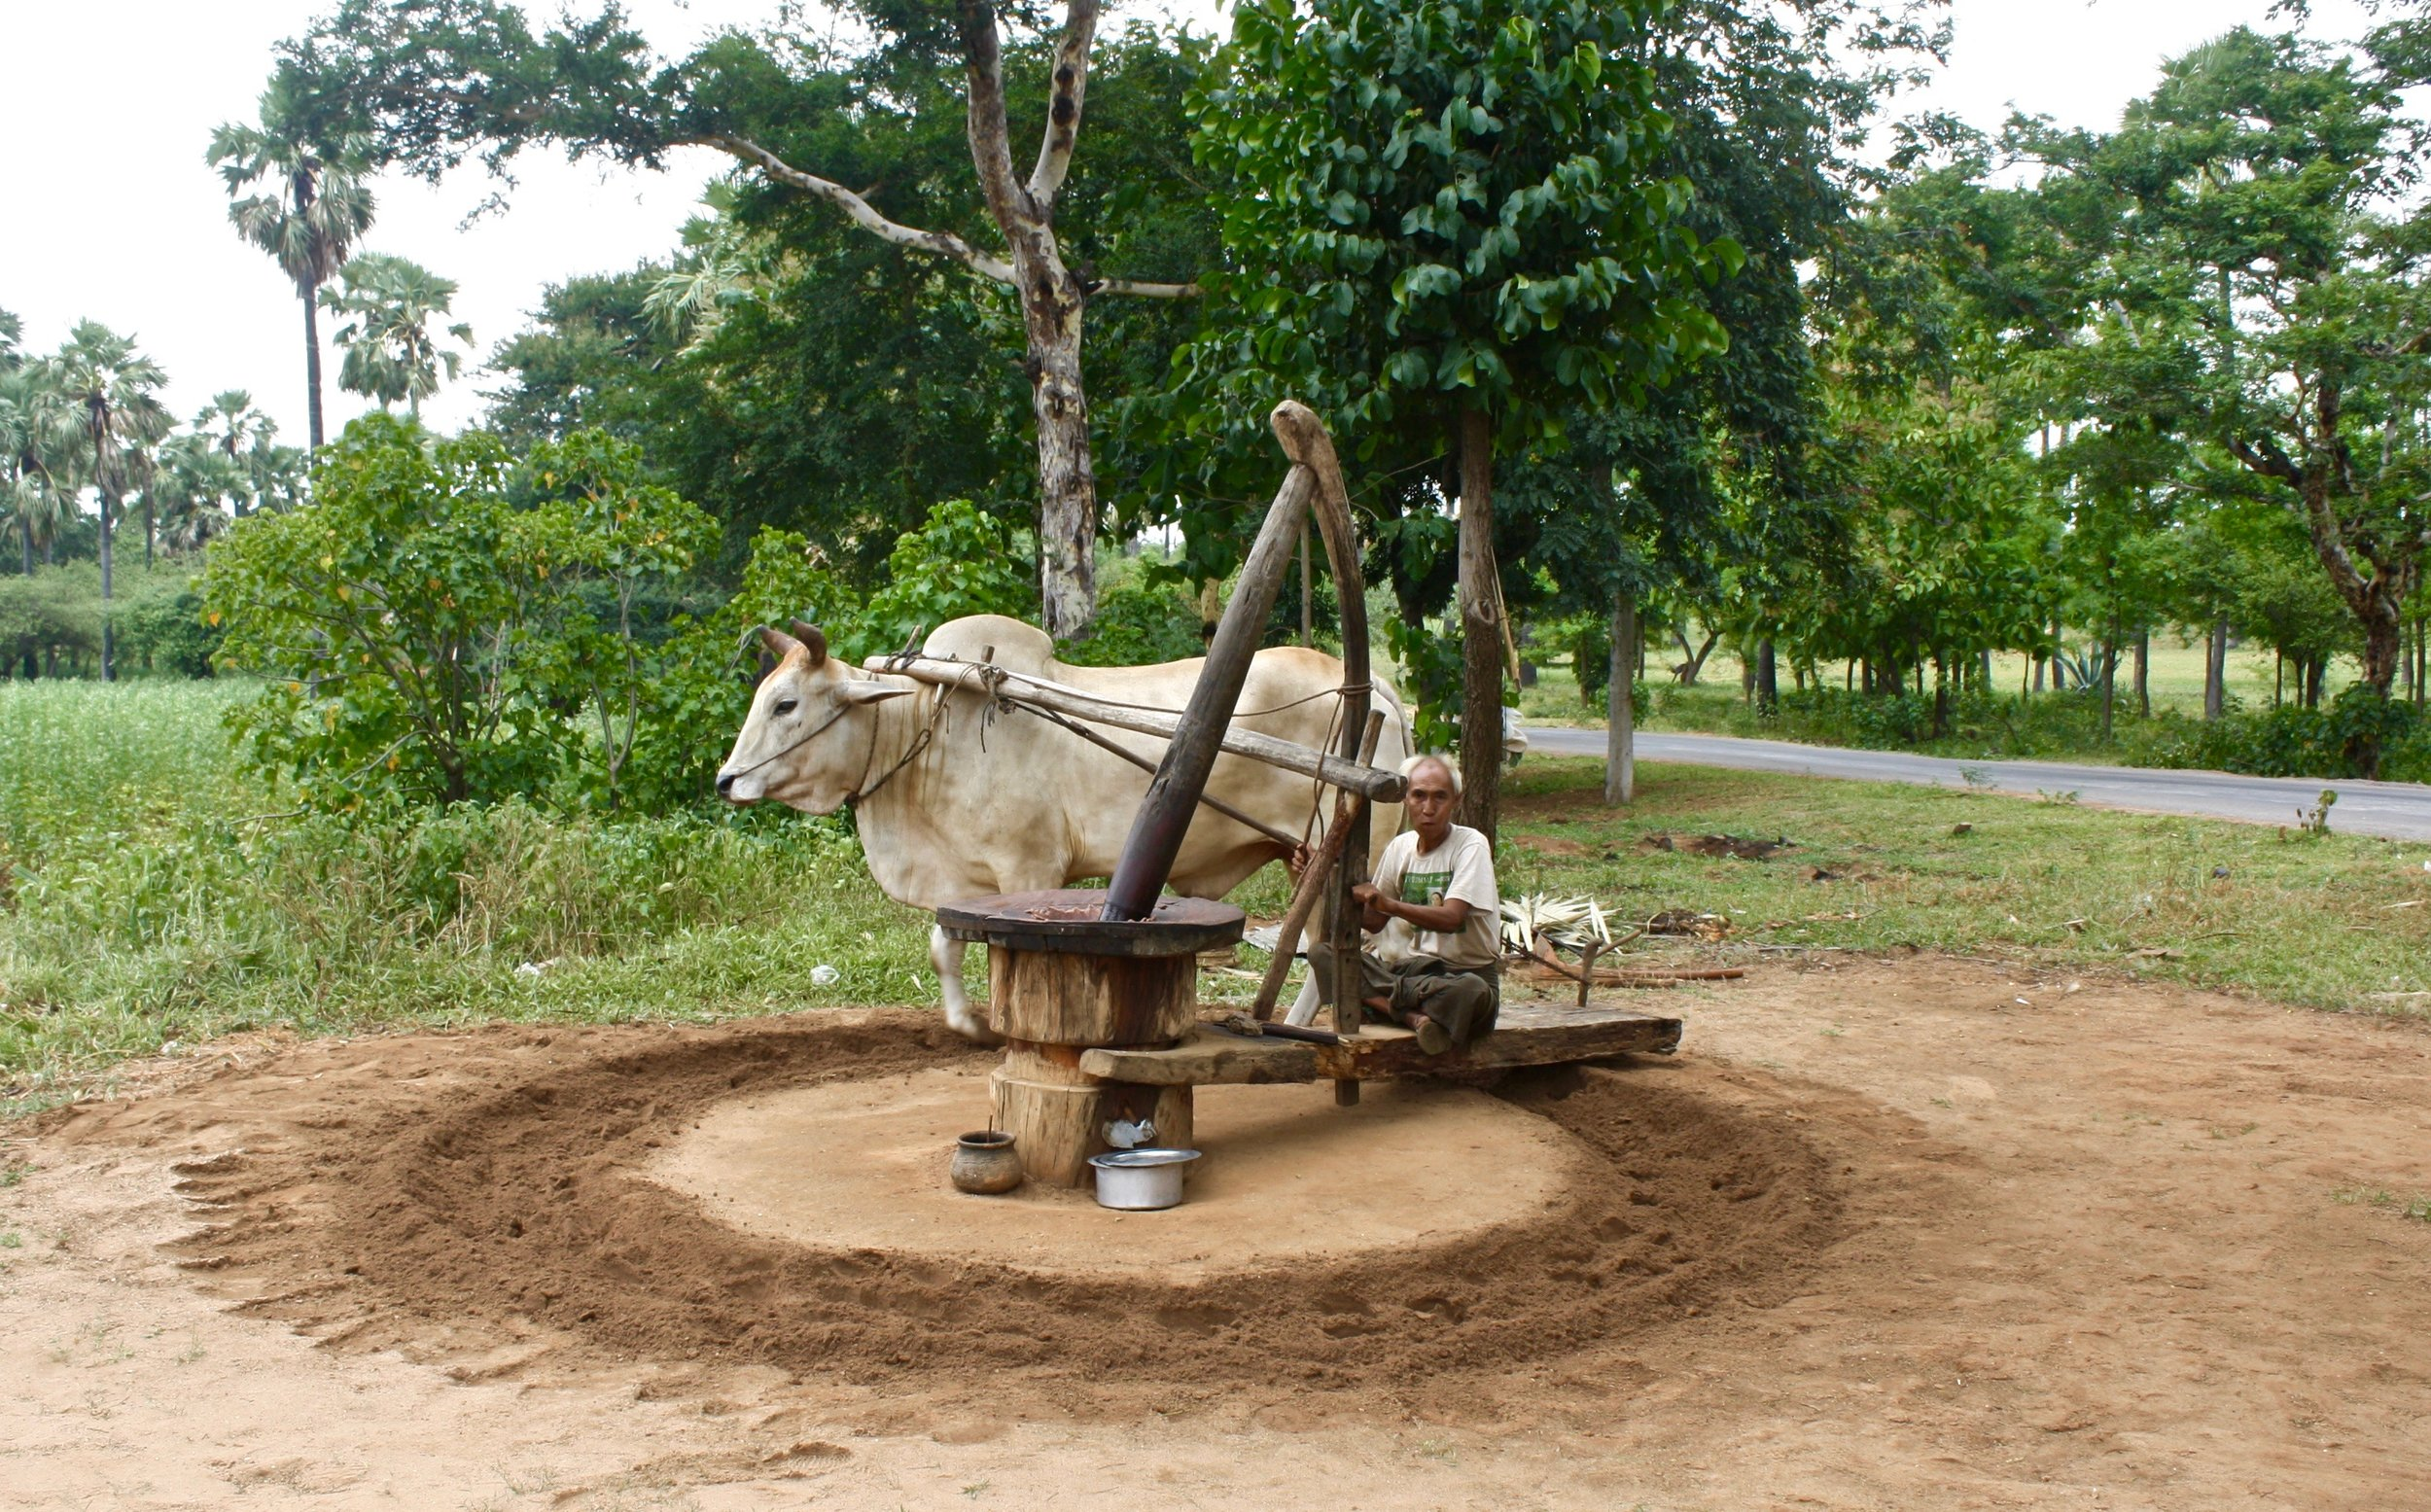 The process of making alcohol from sugar cane. Photo taken near Bagan, Myanmar.